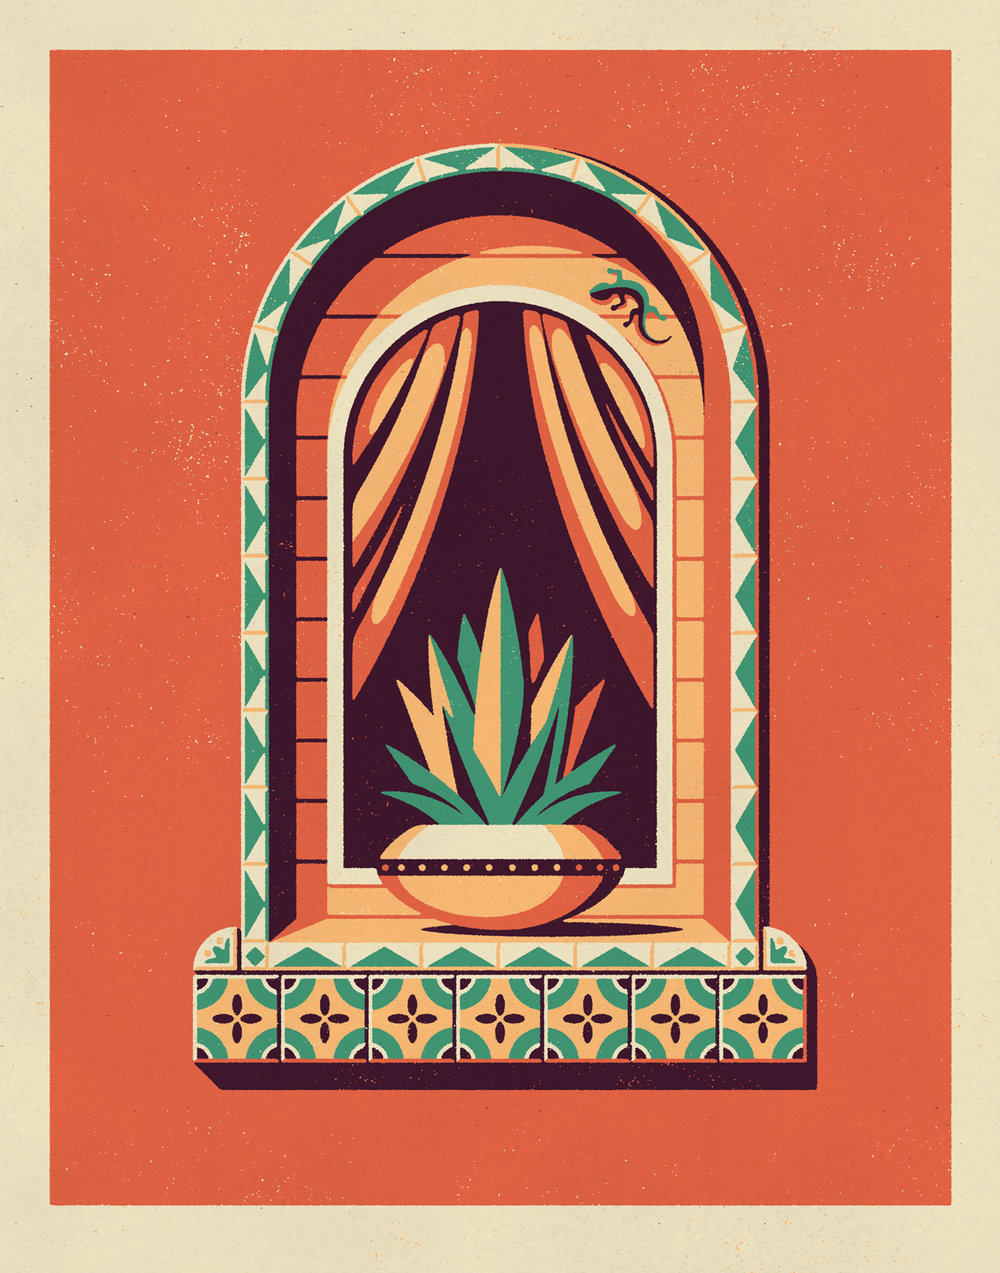 Jalisco Art Print by DKNG